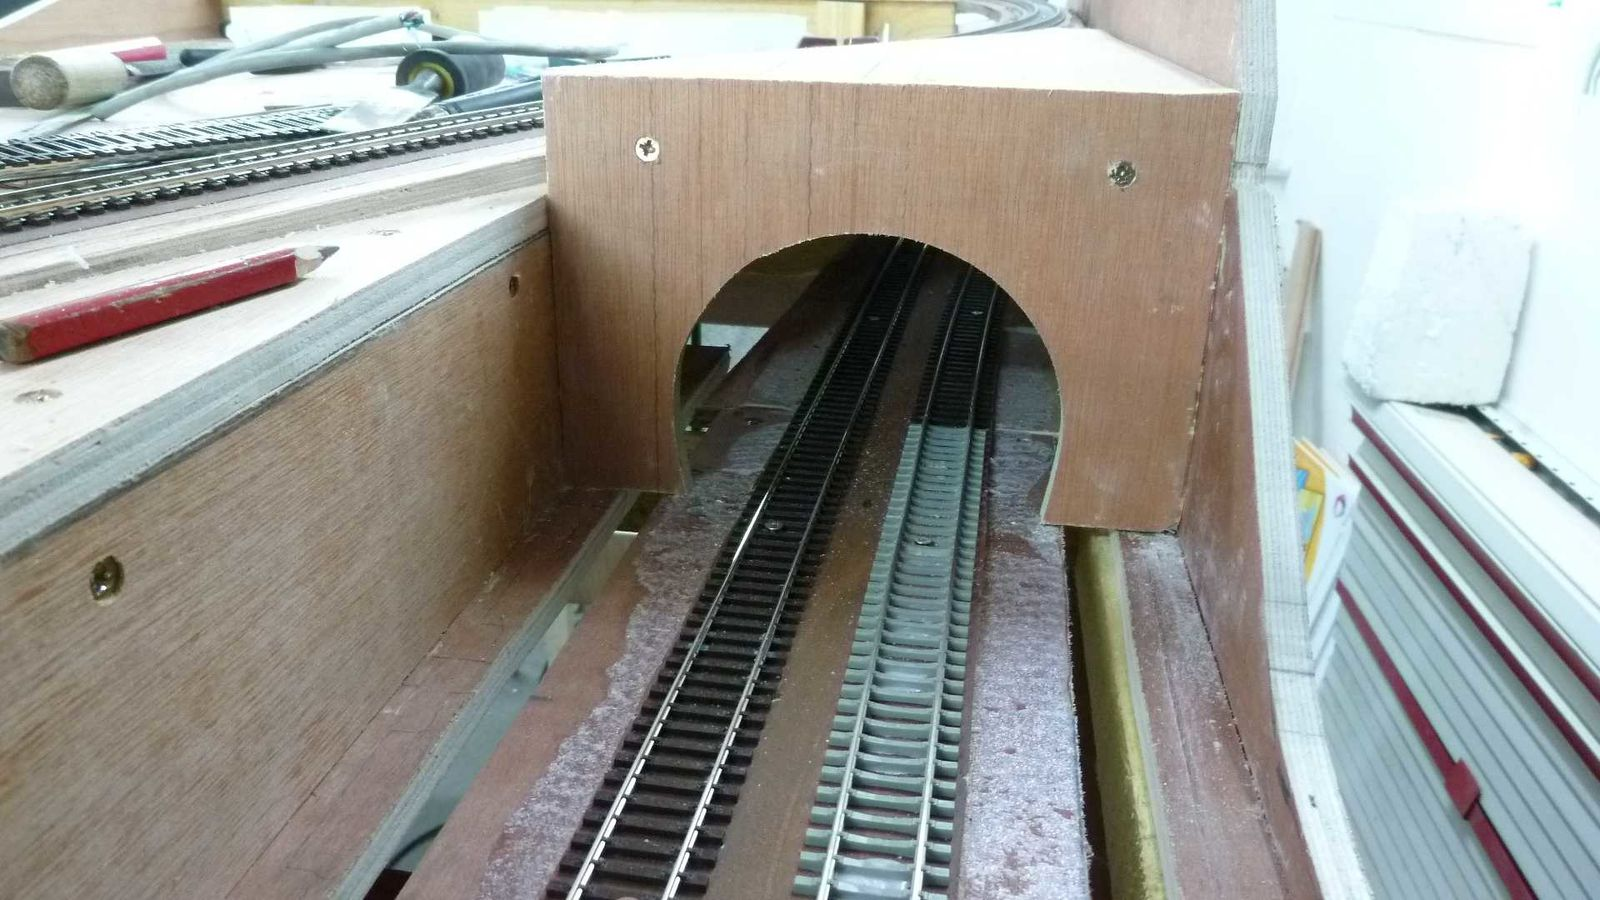 Club amfr romilly romilly trains for Construction de tunnel